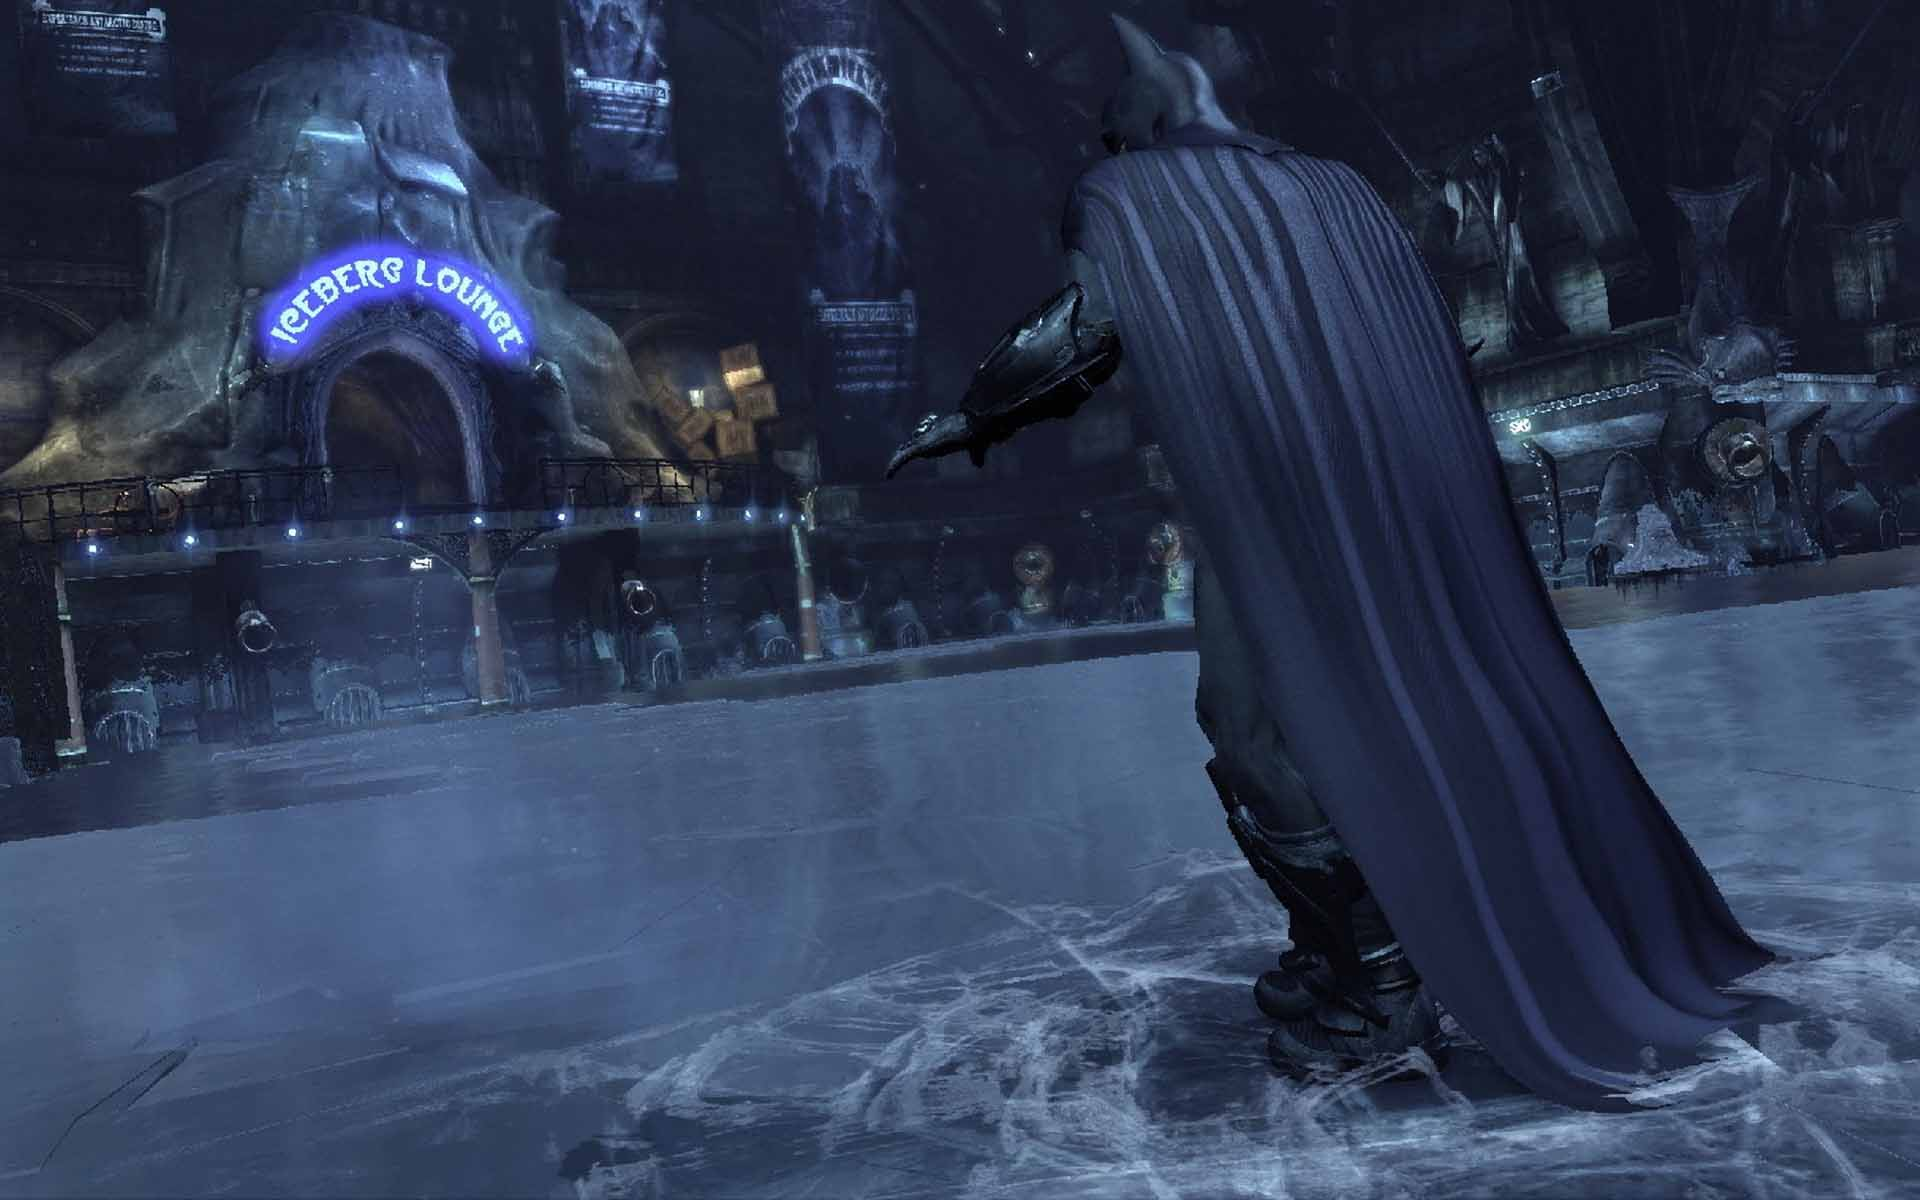 Batman Arkham Asylum Anime Hd Desktop Wallpaper 1080p Wallpaper